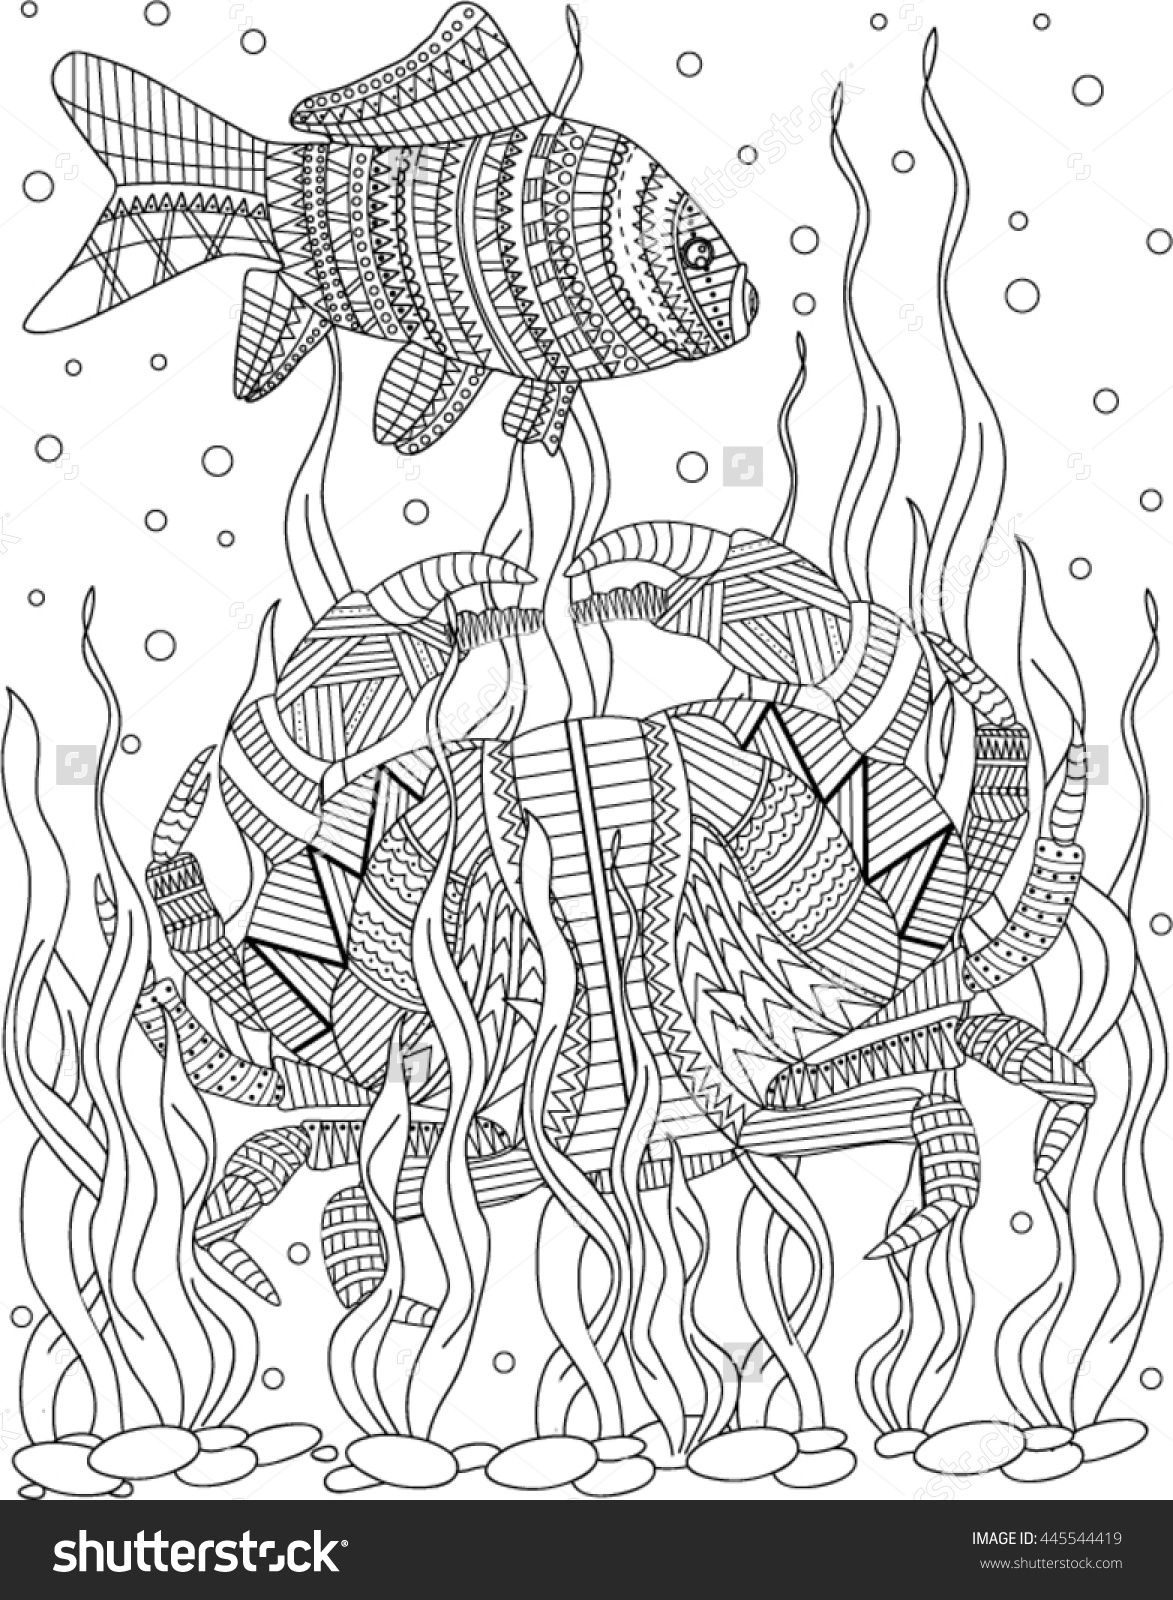 crab zentangle coloring page | ✐♋Adult Colouring~Under the Sea ...